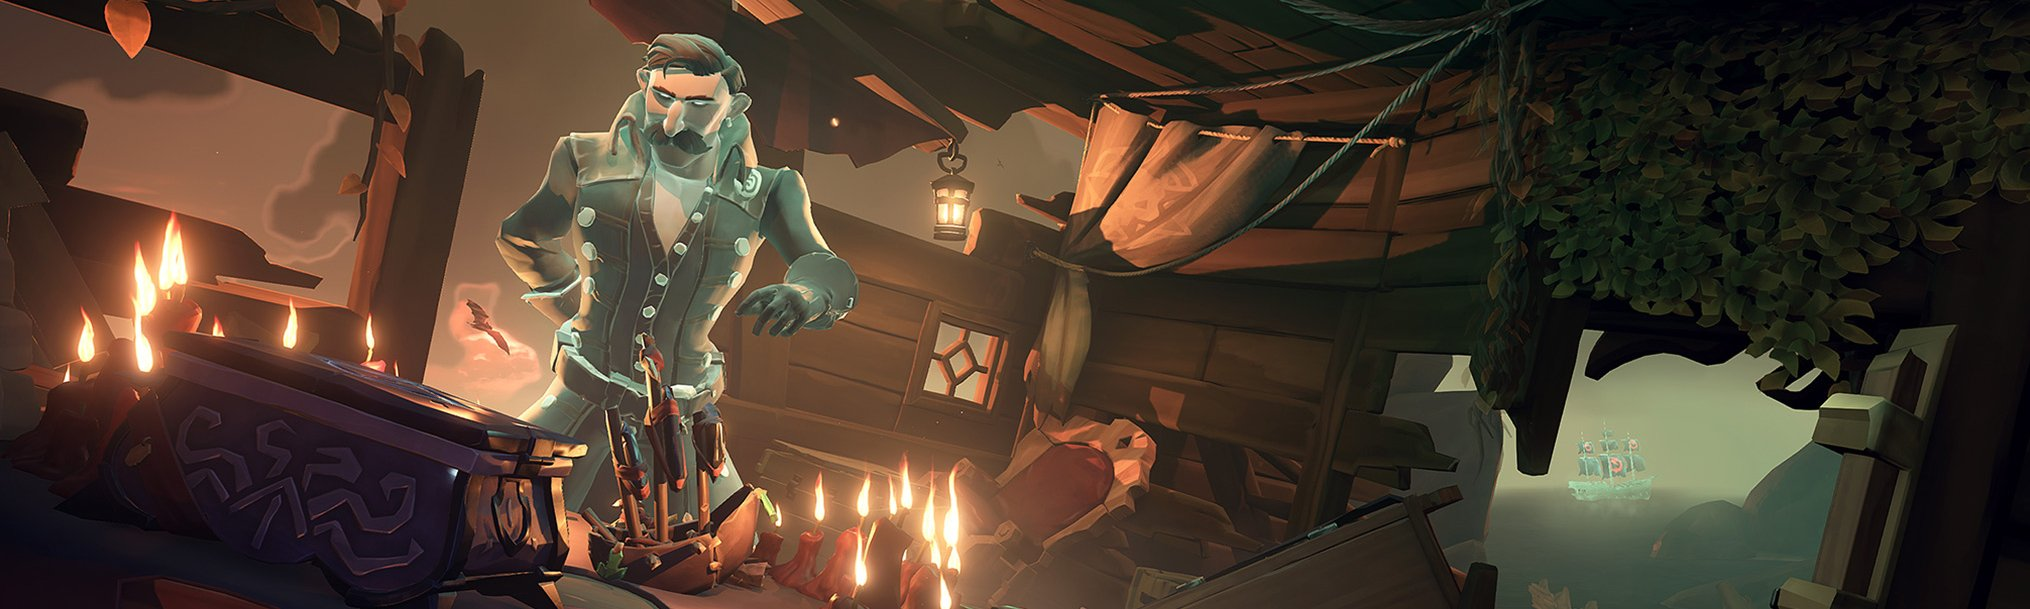 Sea of Thieves Tall Tale guides